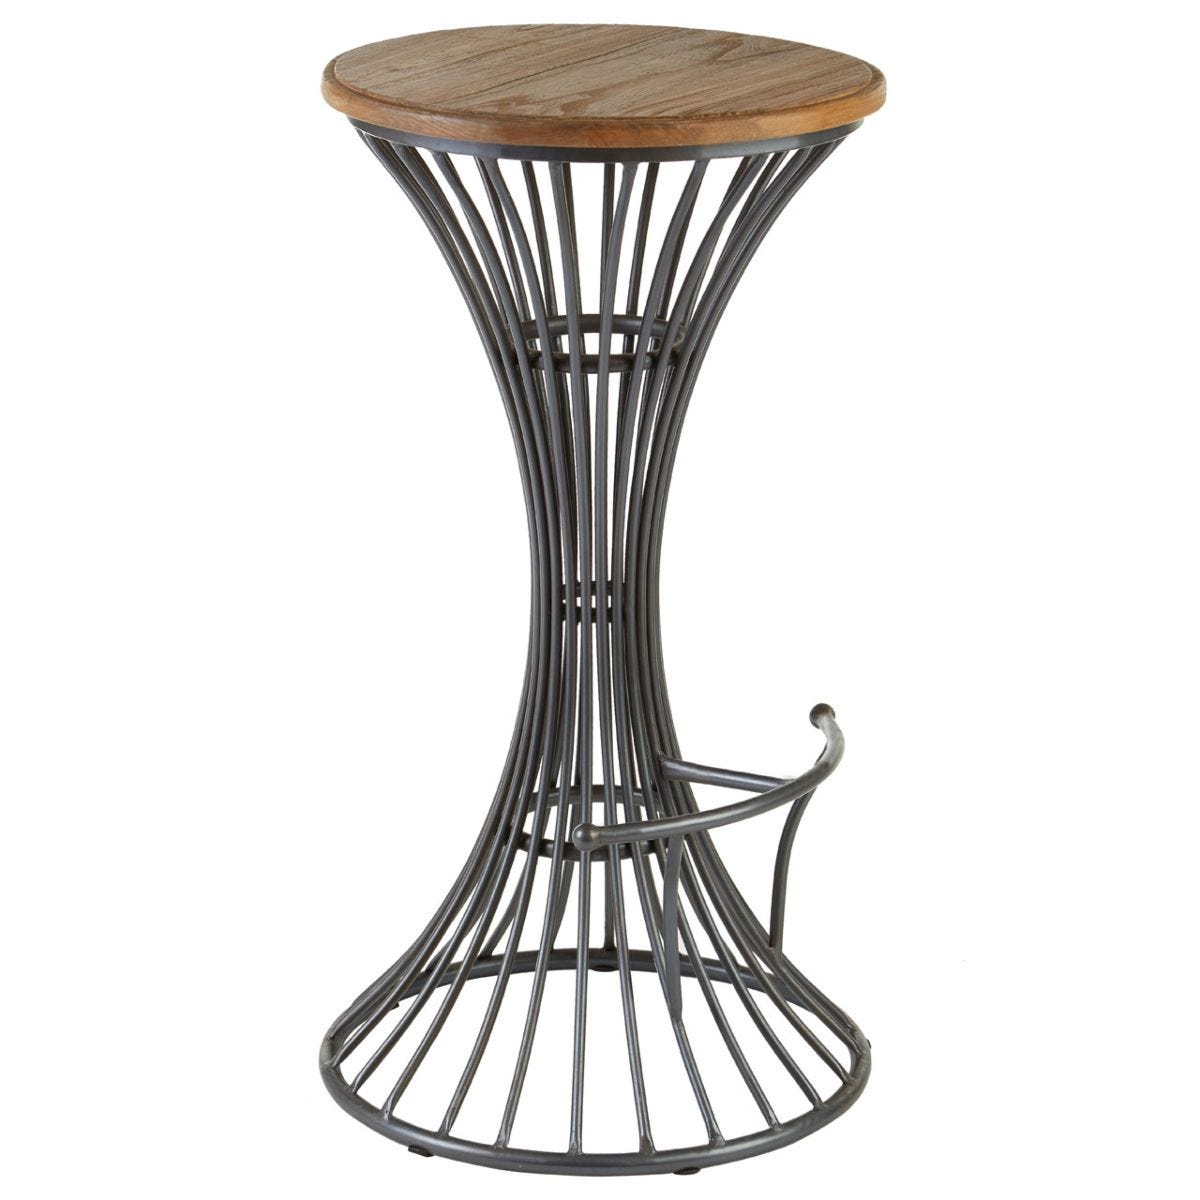 New Foundry Elm Wood Bar Stool